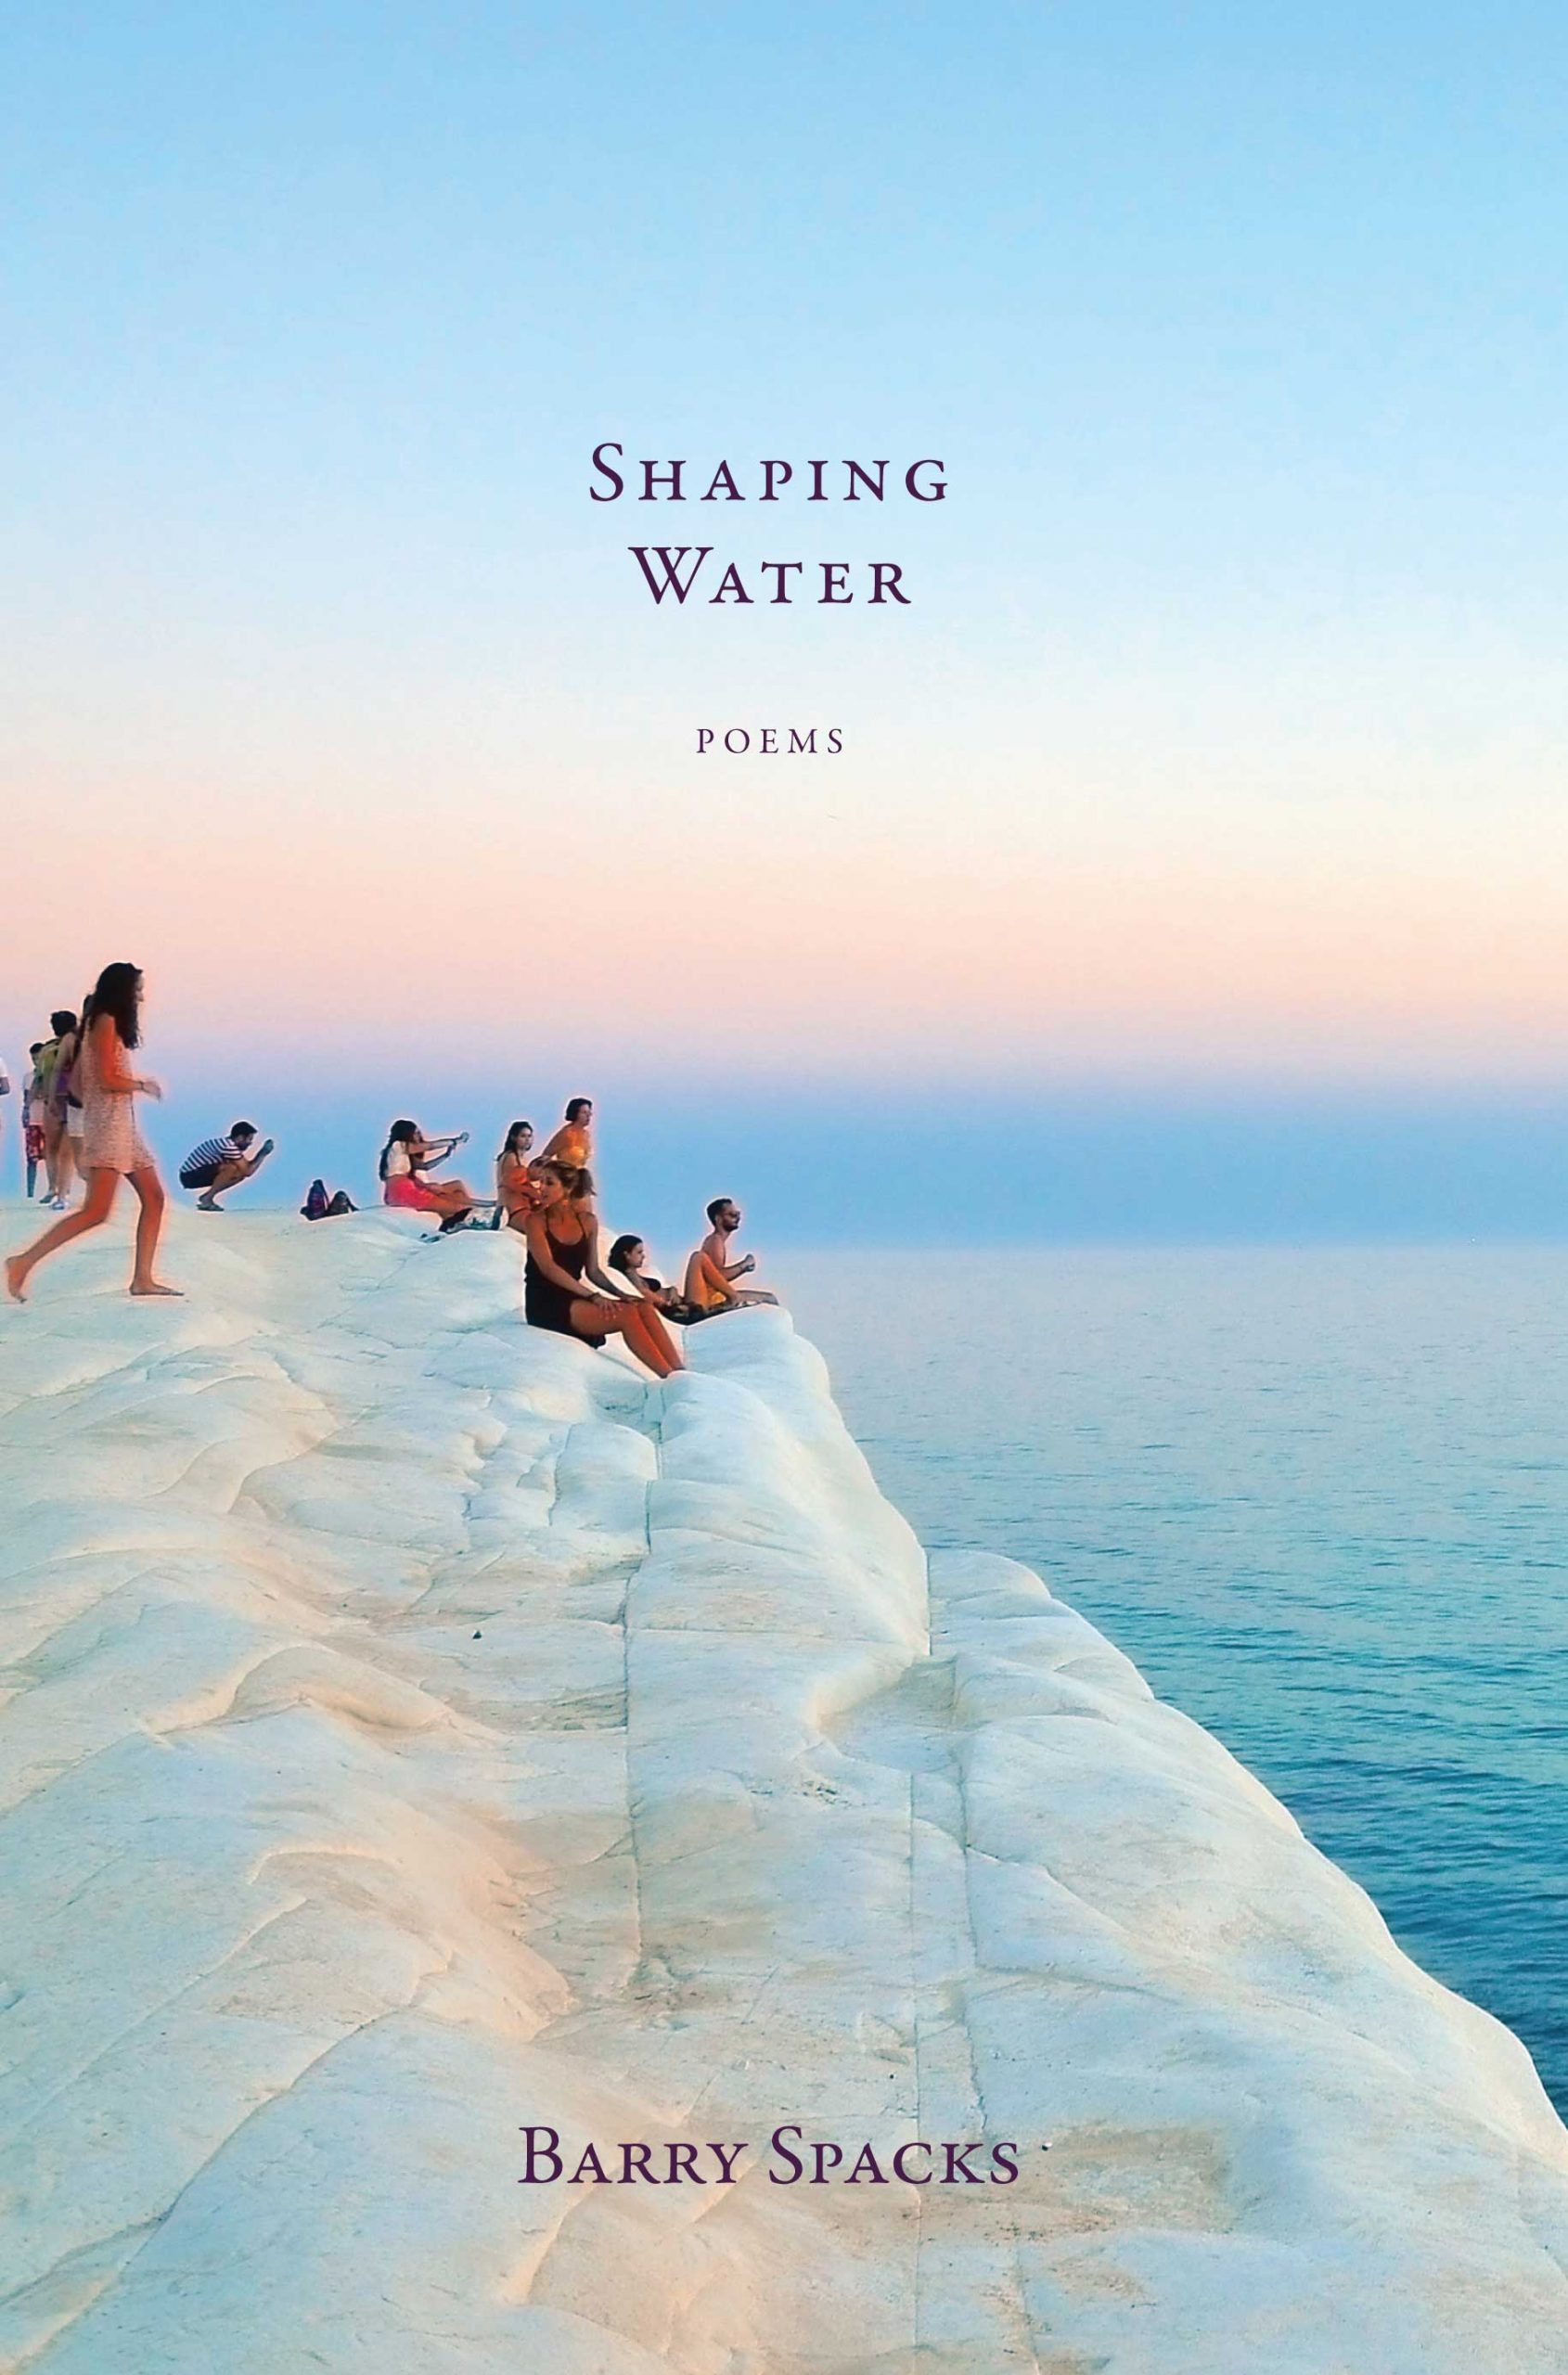 Shaping Water: Poems by Barry Spacks